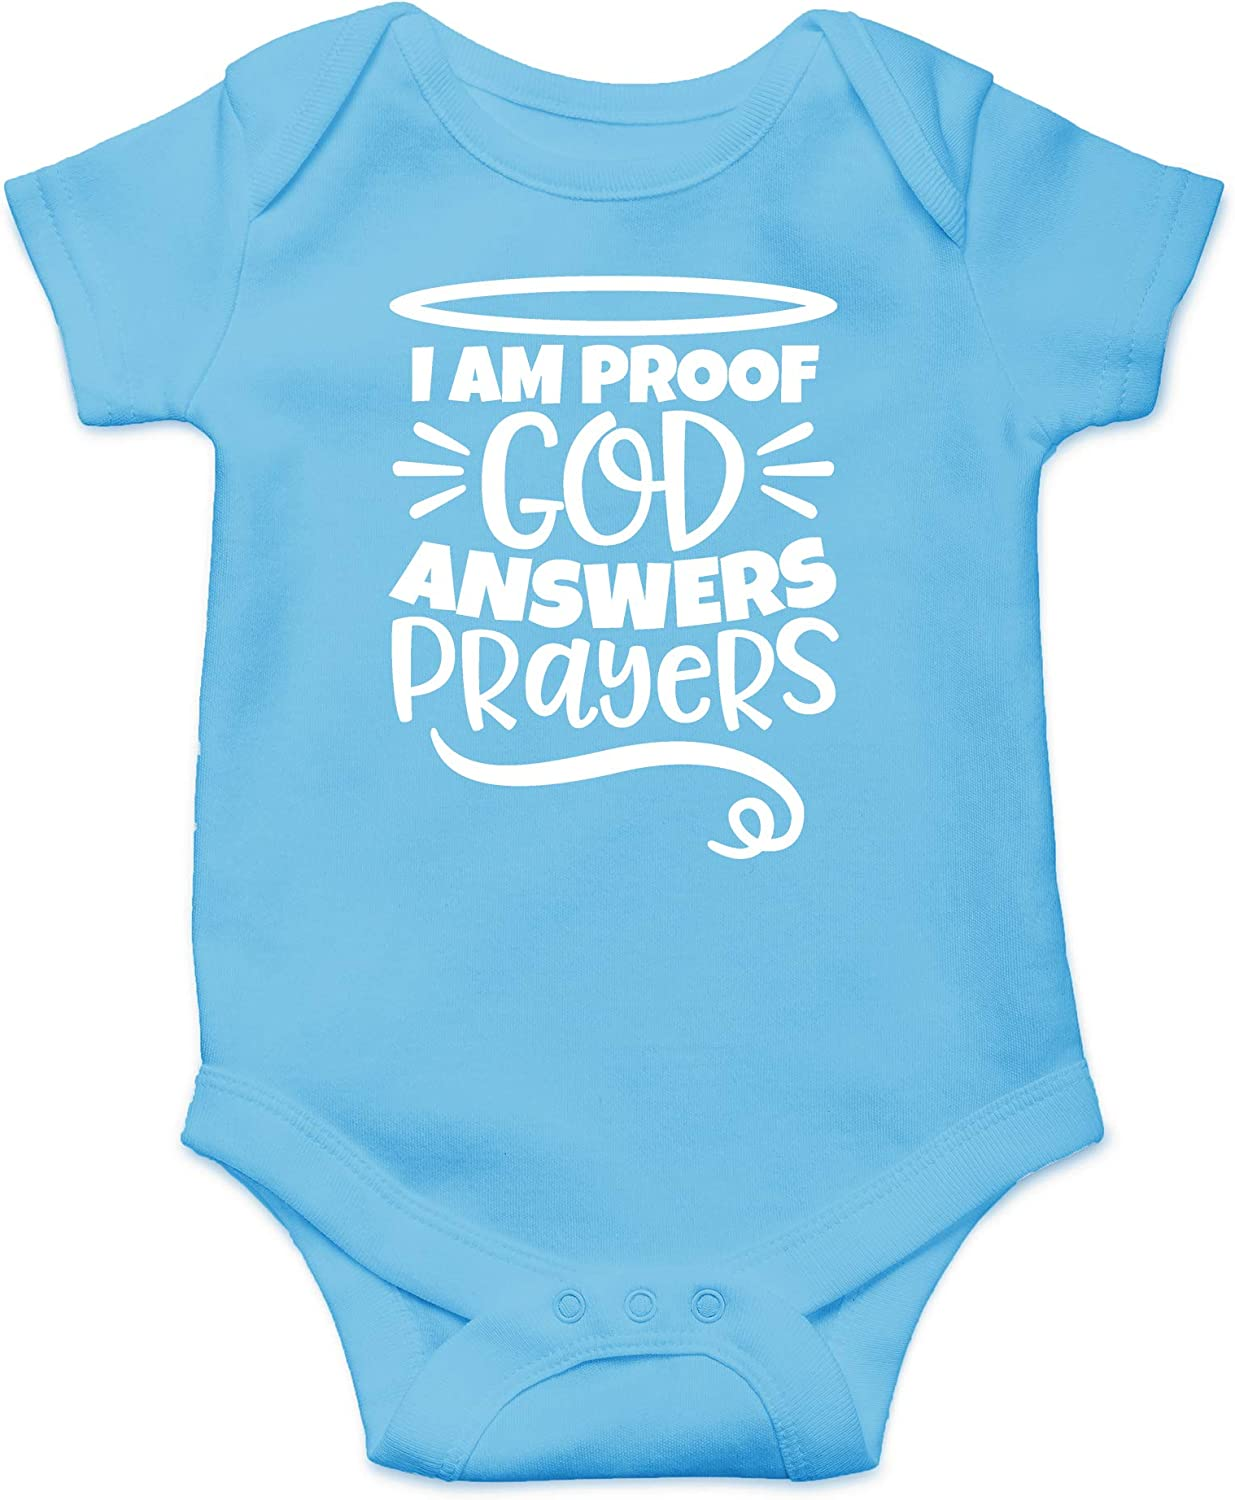 I am Proof God Answers Prayers - Coming Home Outfit for Girls or Boys - Cute Infant One-Piece Baby Bodysuit